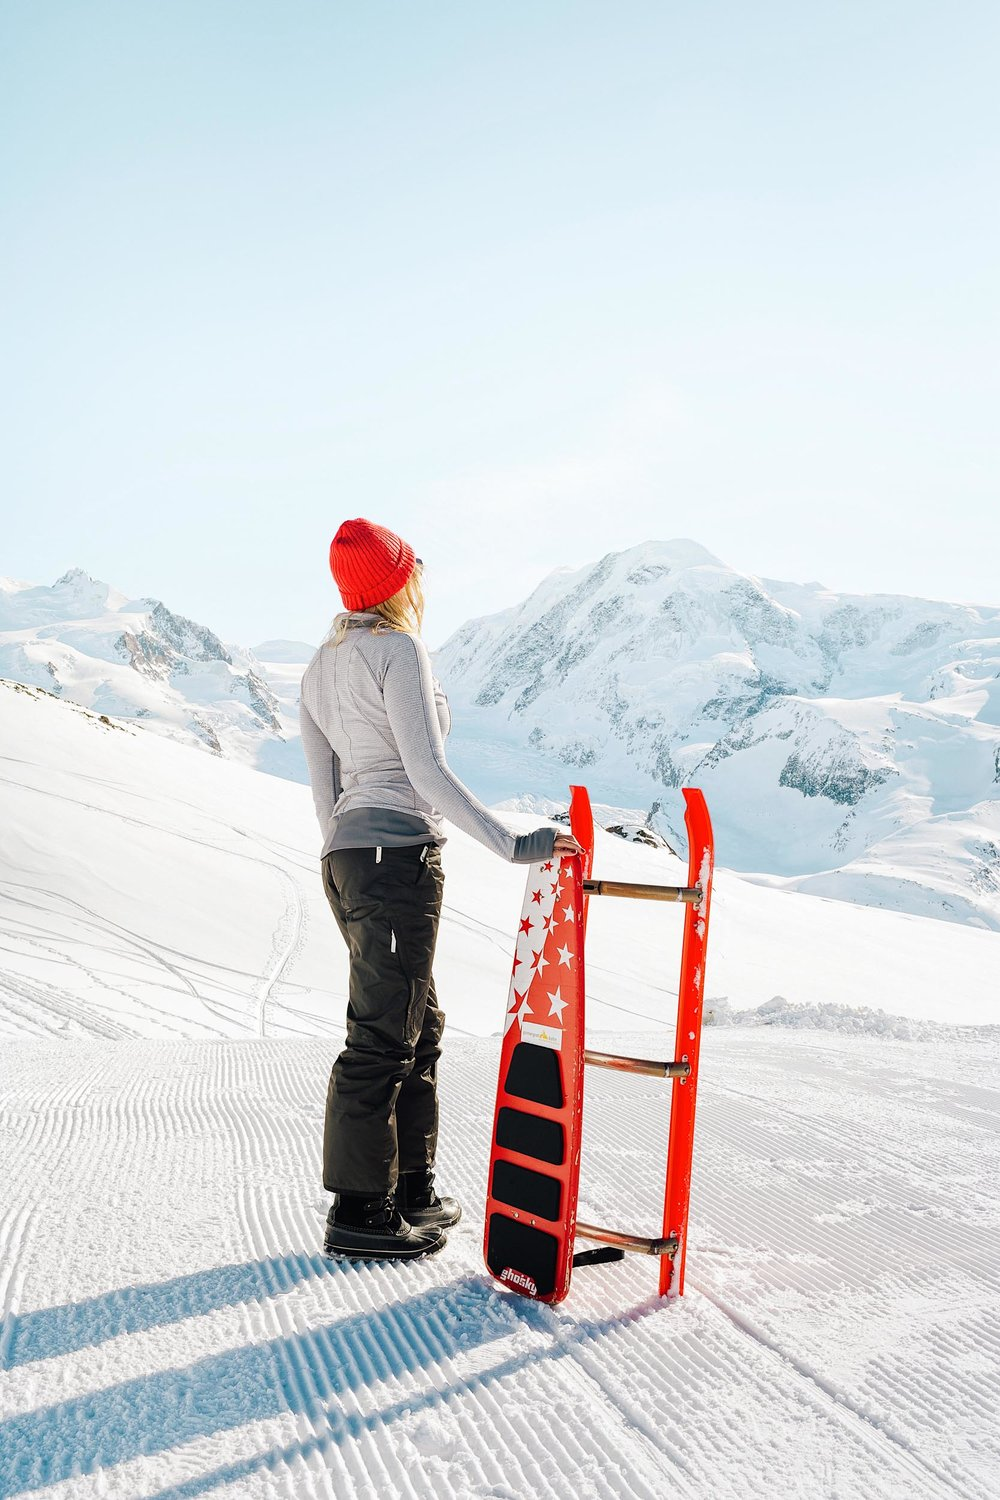 Tobogganing in Zermatt - a great winter adventure!